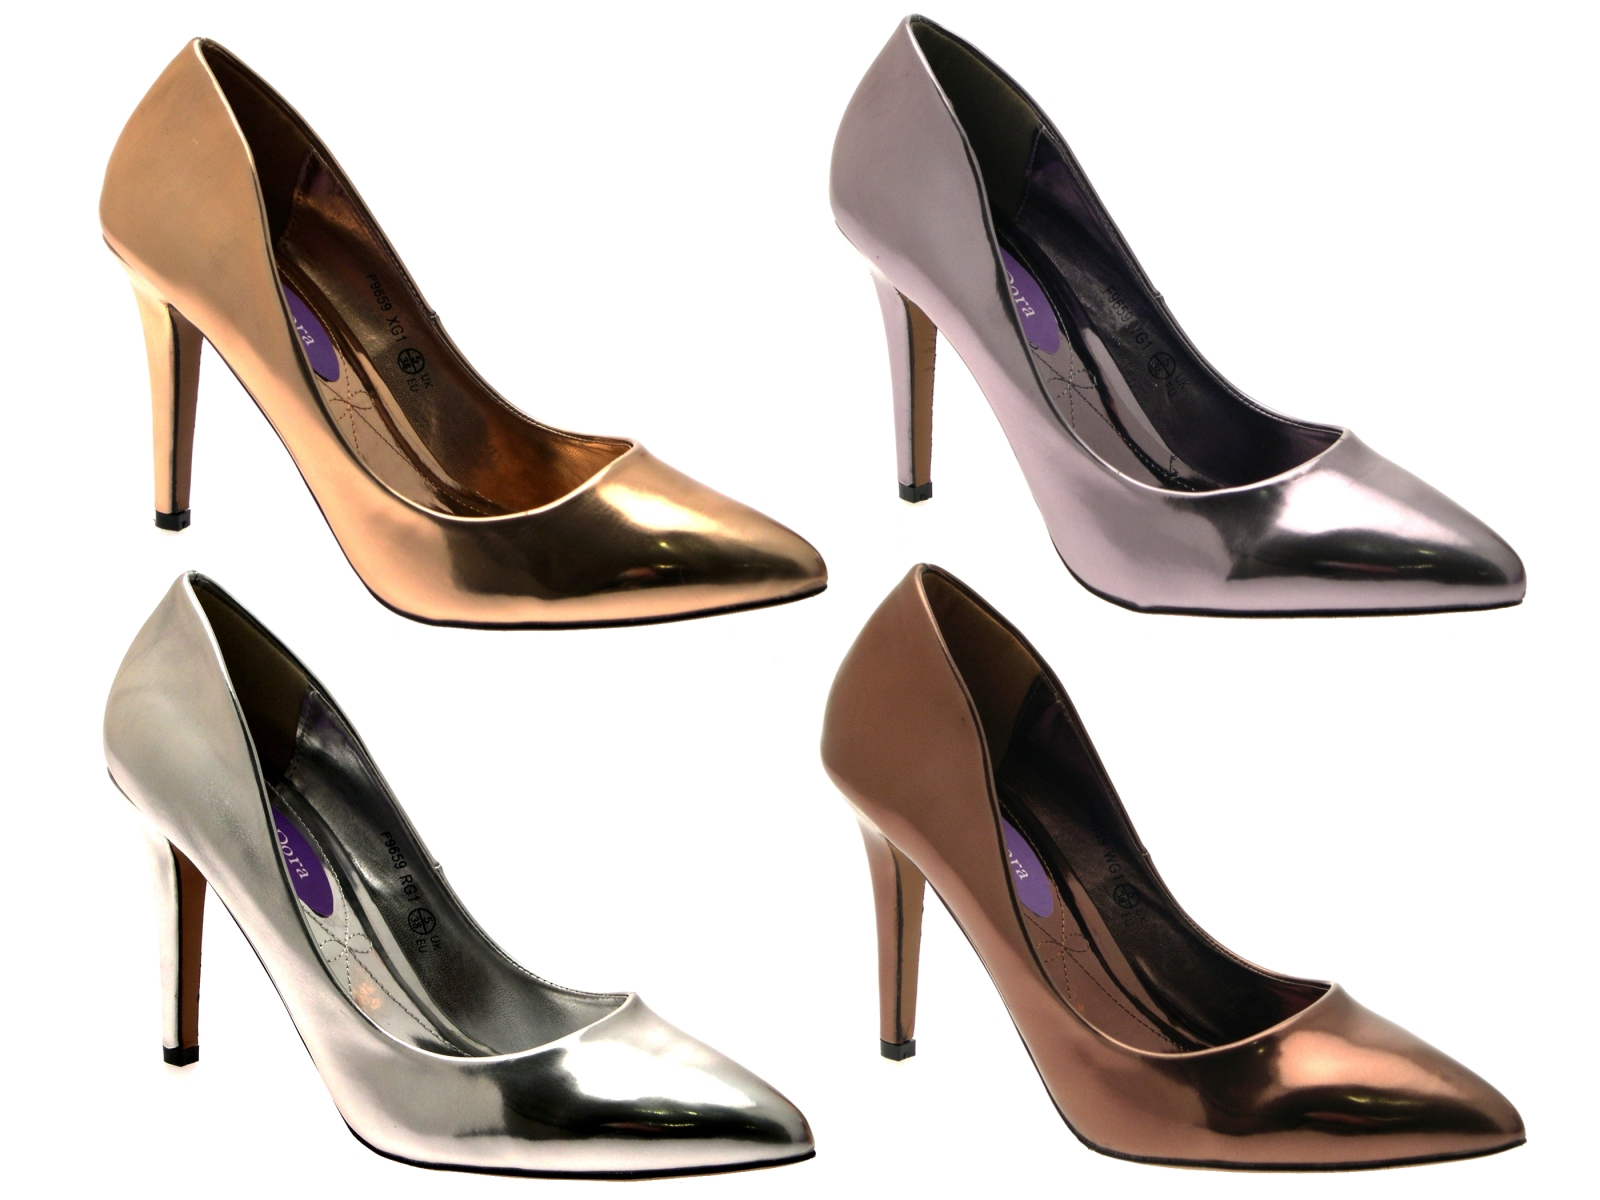 Womens-Metallic-Pointed-Toe-Court-Stiletto-High-Heels-Ladies-Work-Office-Shoes thumbnail 17